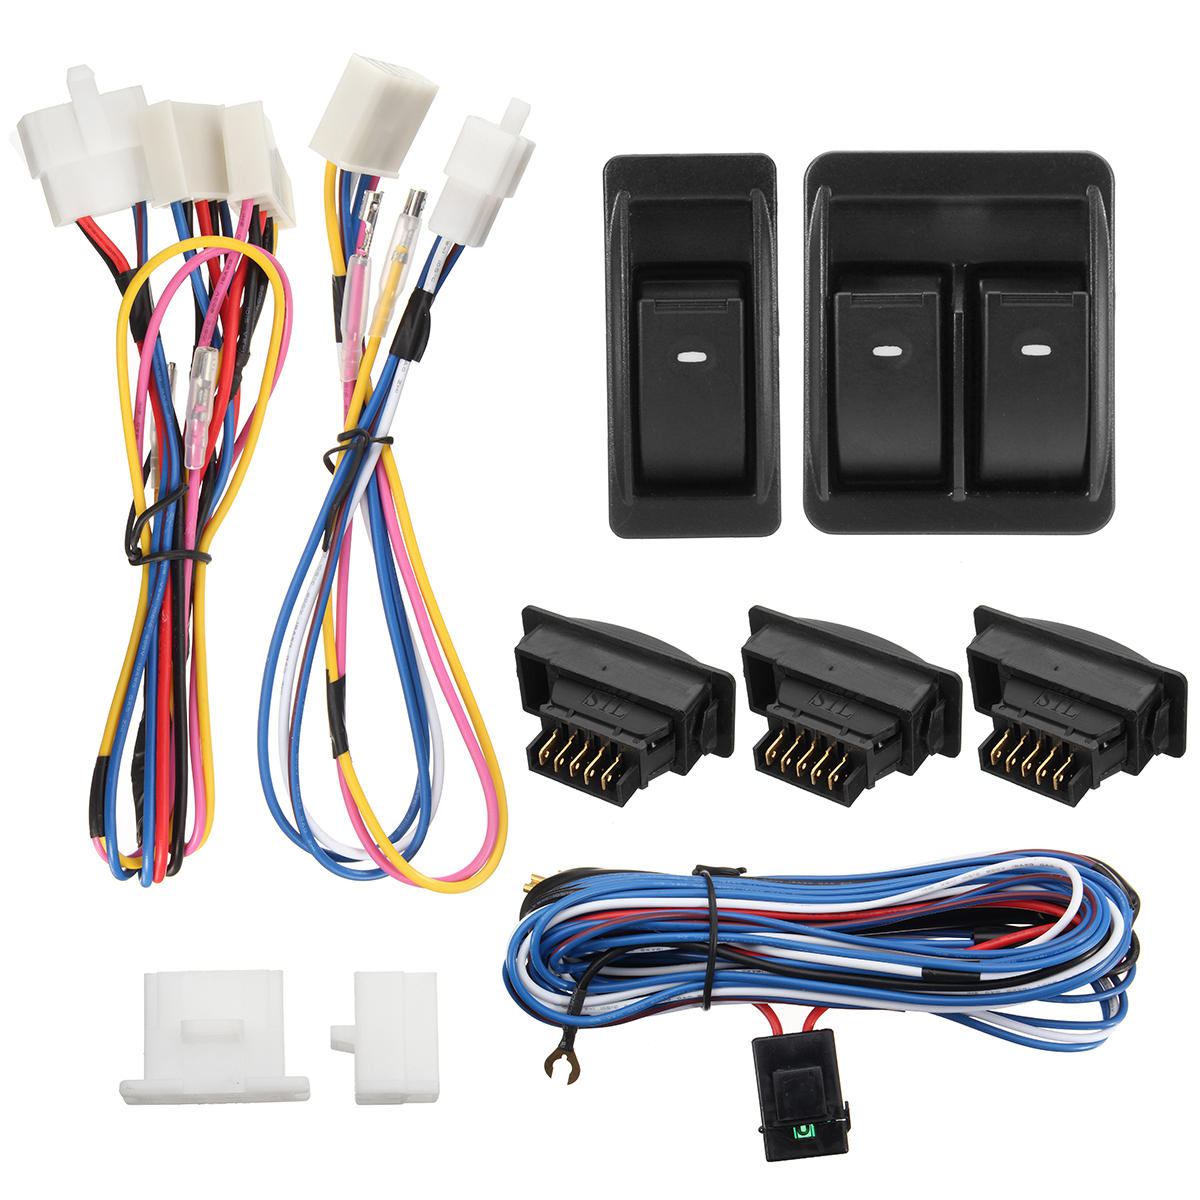 12v vehicle off-road power door window switch with wiring harness cod